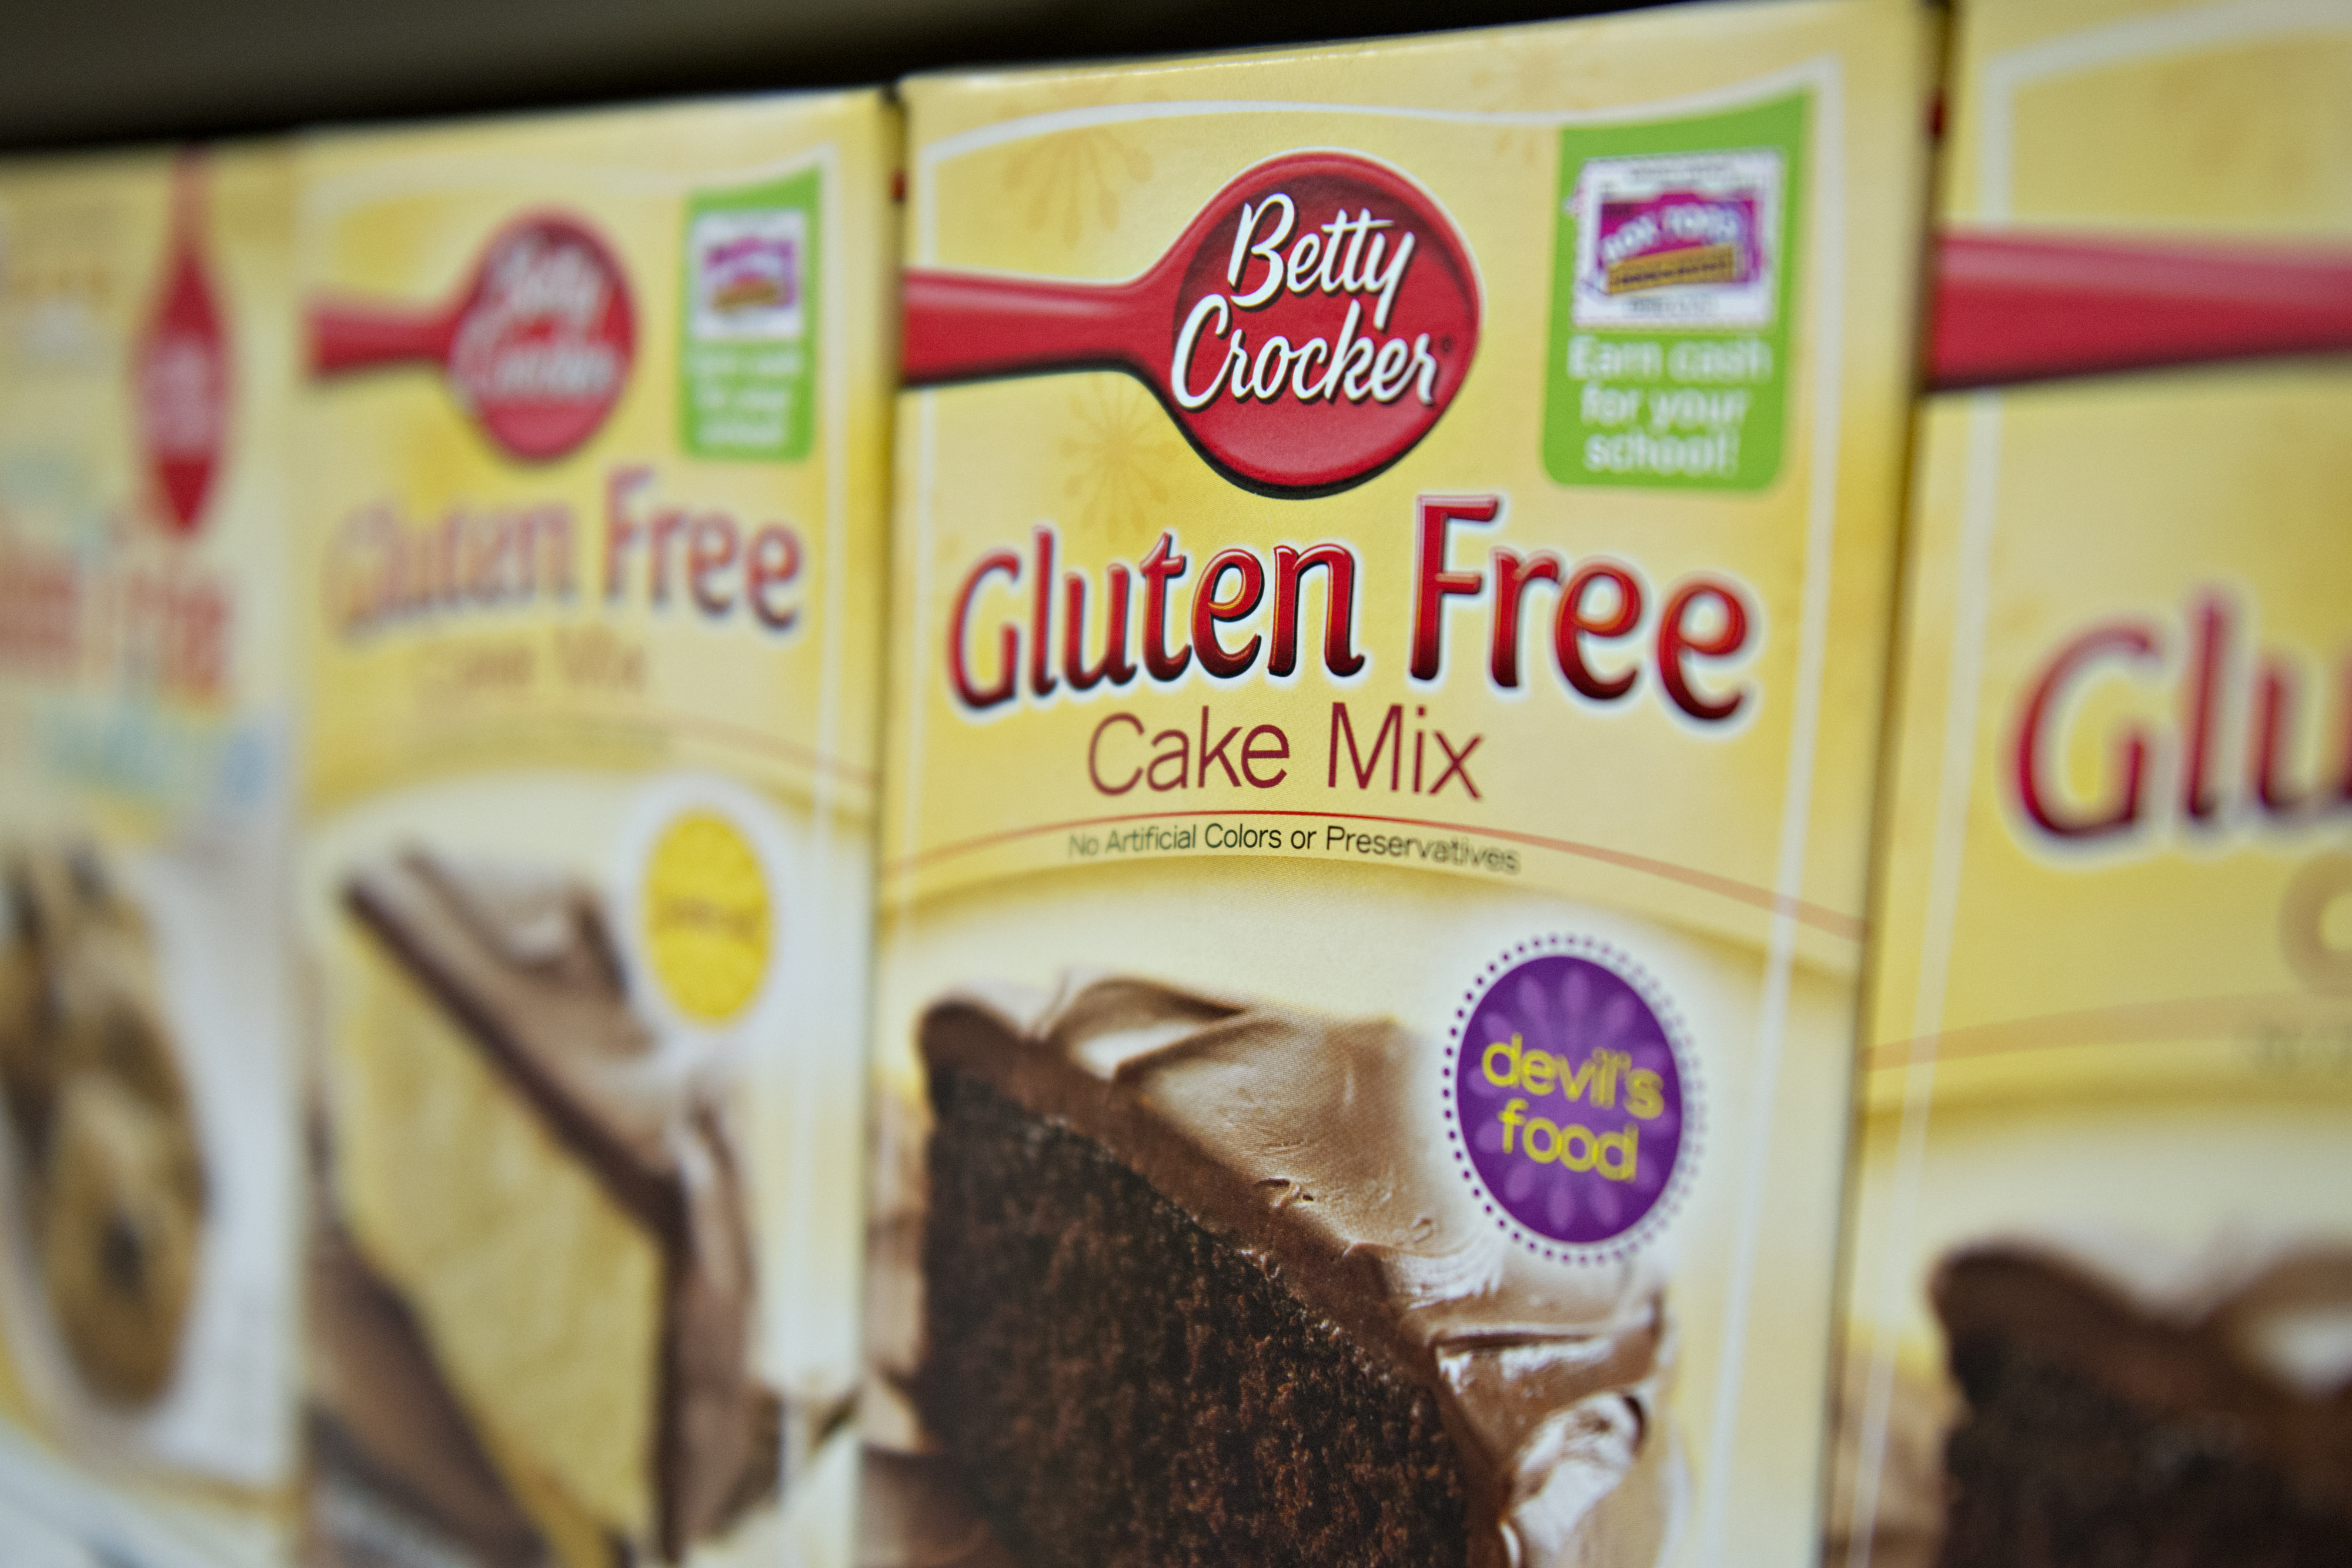 Gluten Free  appears on the packaging for General Mills Inc. Betty Crocker brand cake